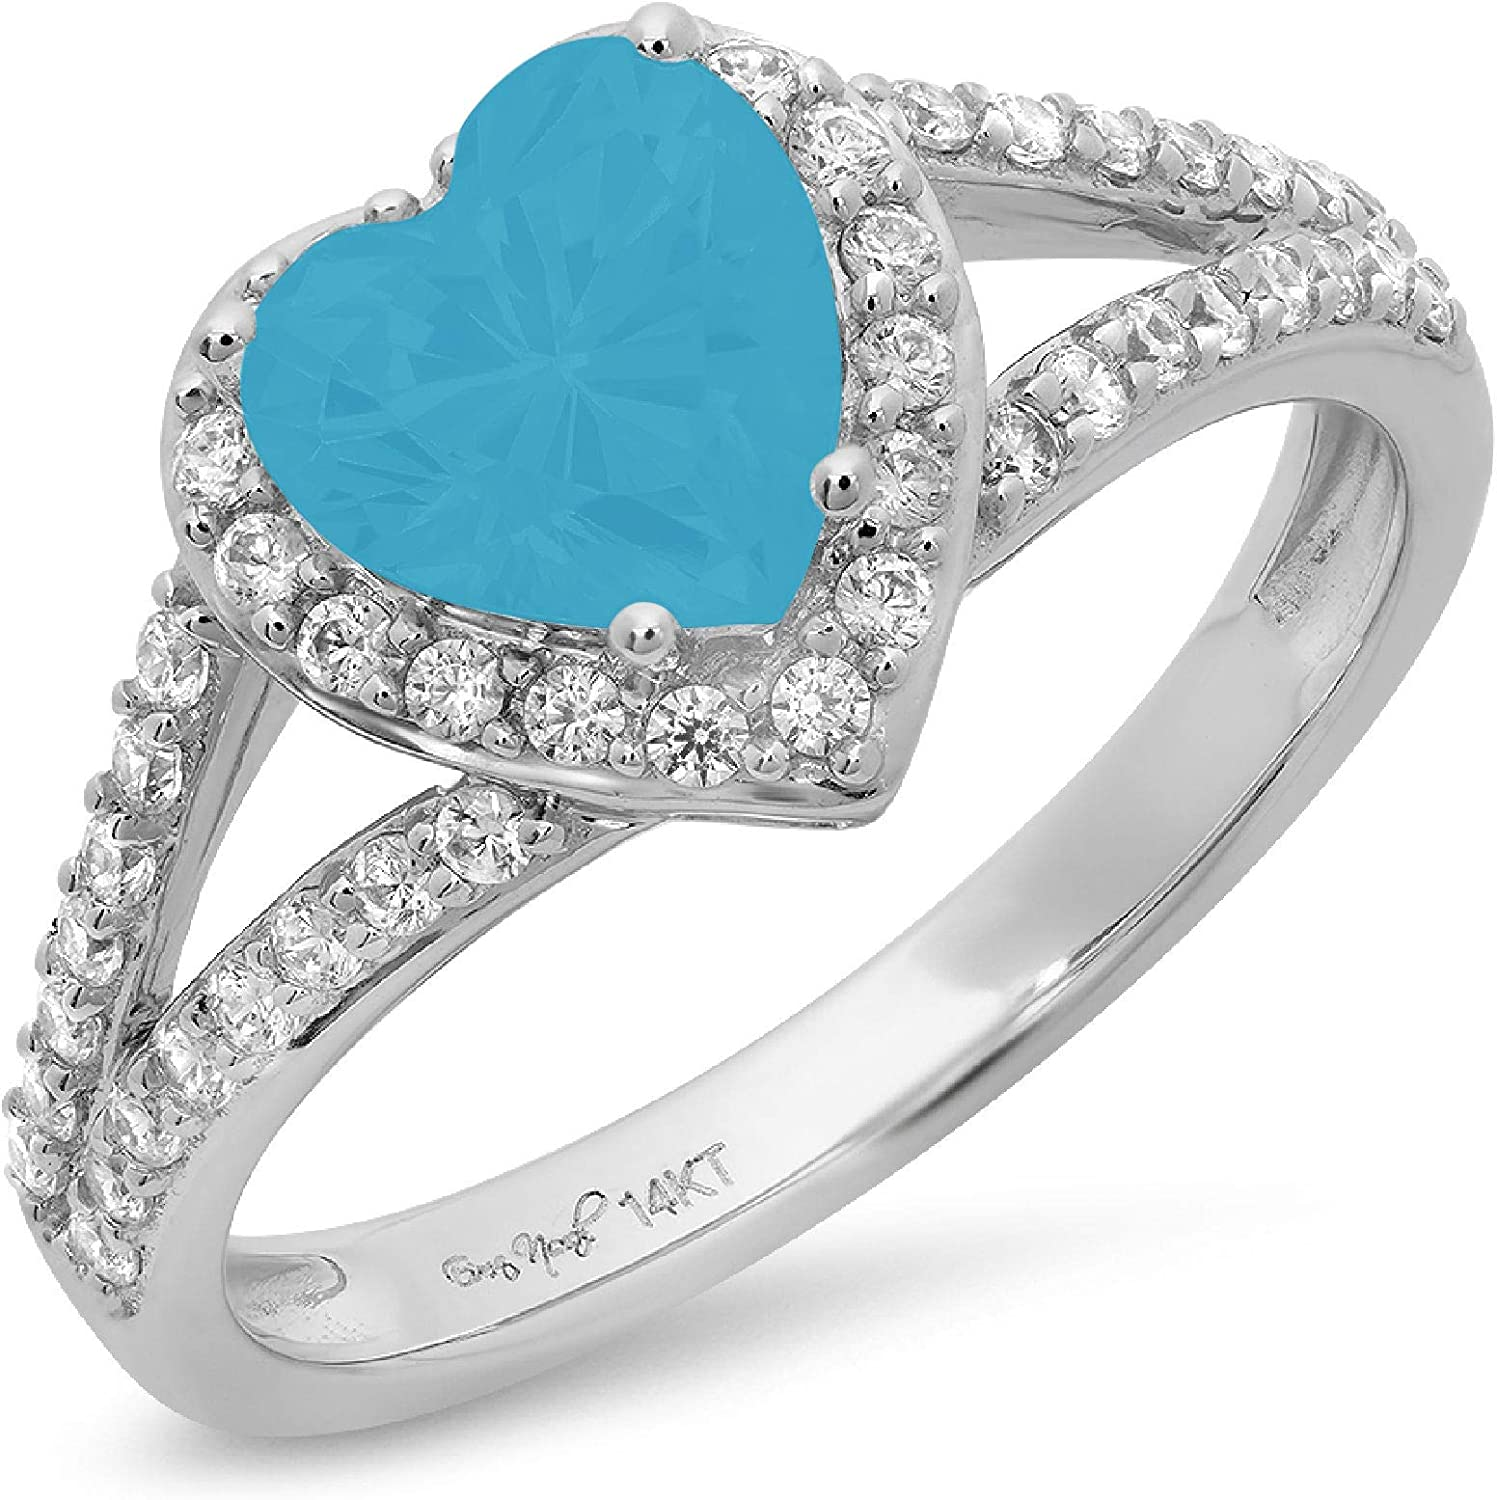 1.75 ct Heart Cut Solitaire Accent Halo split shank Genuine Flawless Simulated Turquoise Gemstone Engagement Promise Statement Anniversary Bridal Wedding Ring Solid 18K White Gold